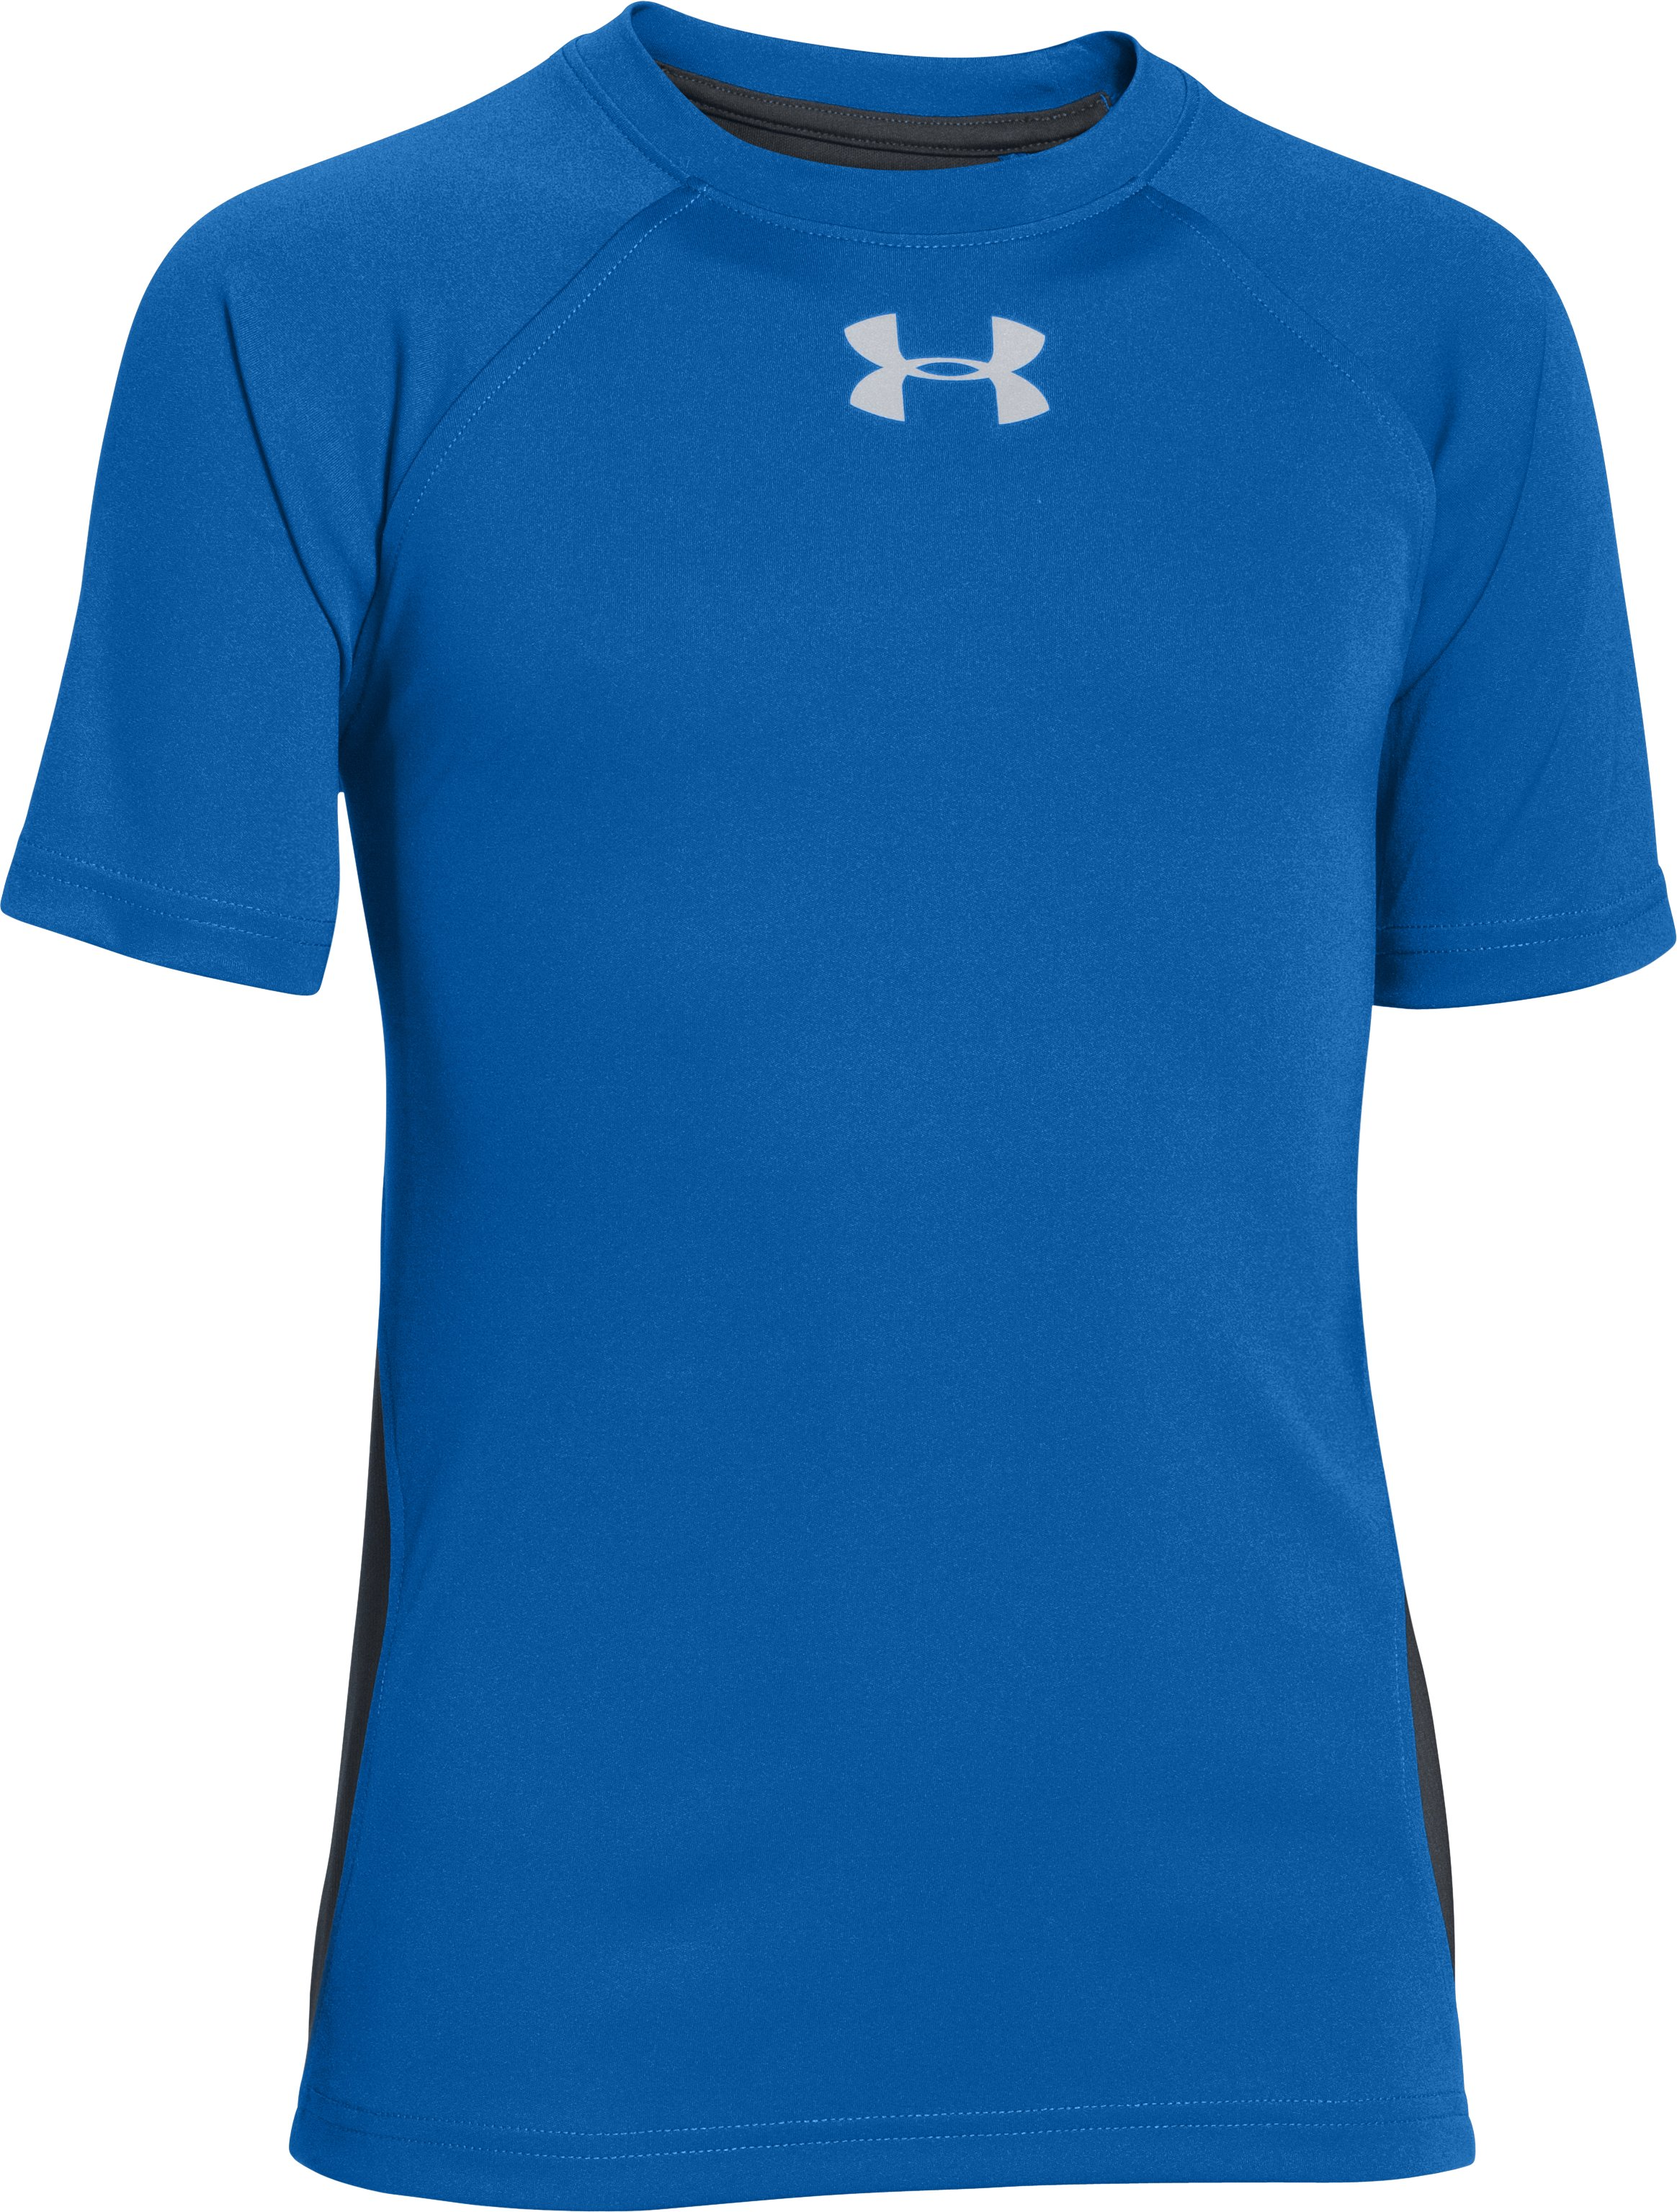 Boys' UA Speed UPF T-Shirt, SCATTER, zoomed image